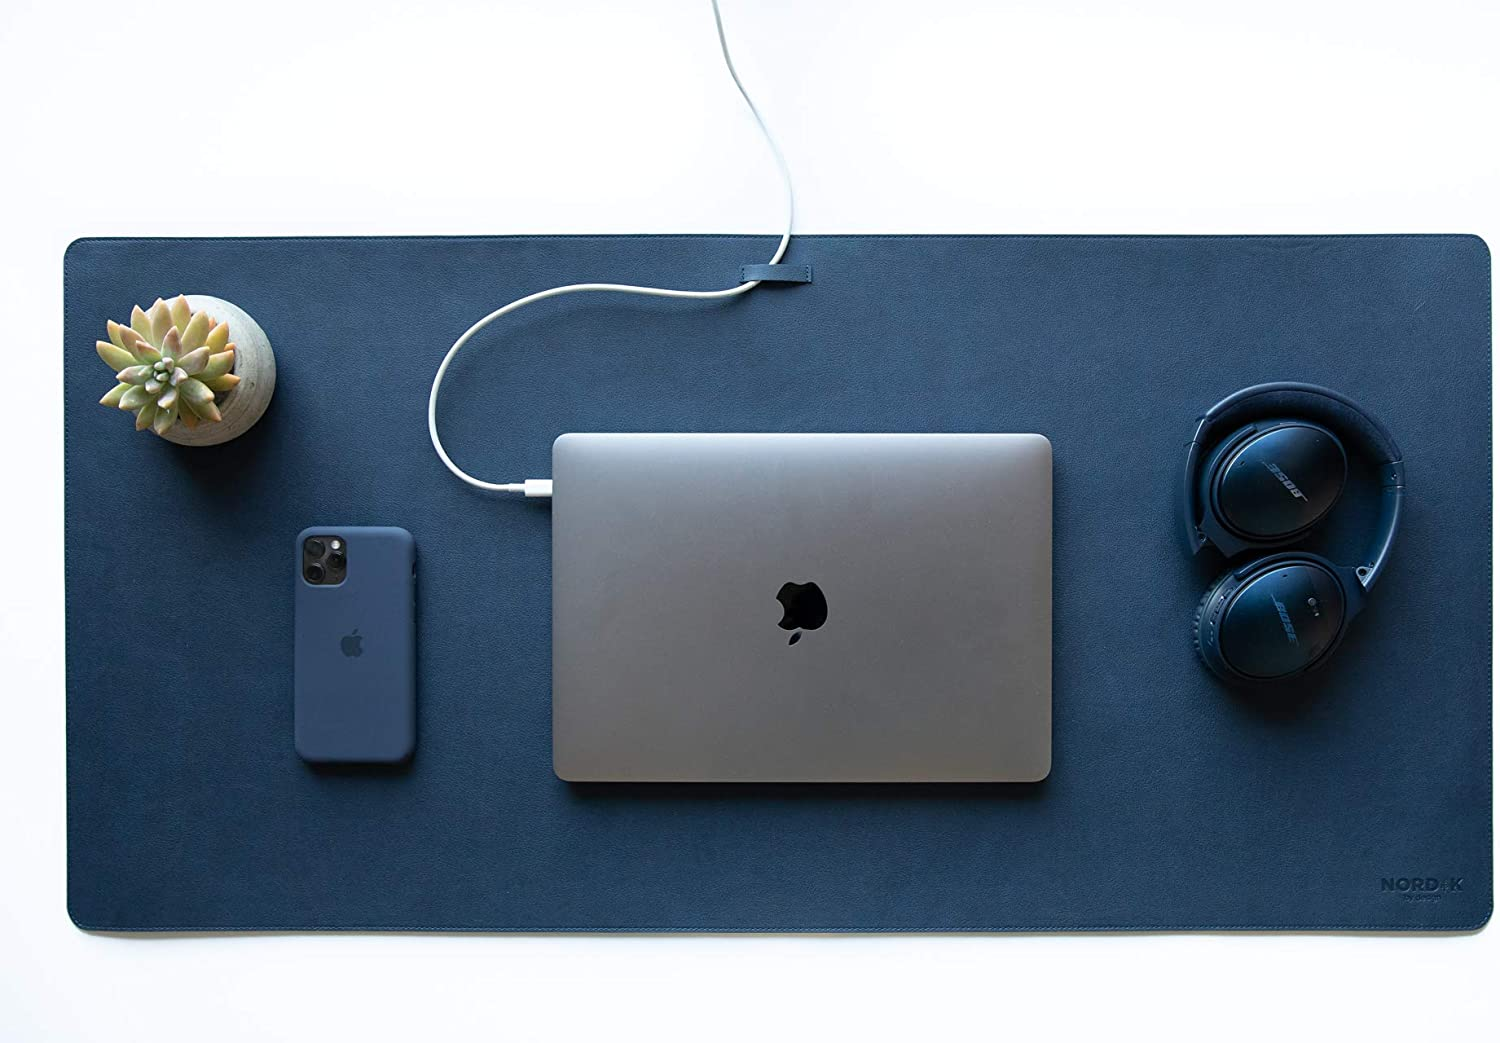 Nordik Leather Desk Mat Cable Organizer (Midnight Blue 35 X 17 inch) Premium Extended Mouse Mat for Home Office Accessories - Non-Slip Vegan Leather Desk Pad Protector & Desk Blotter Pad